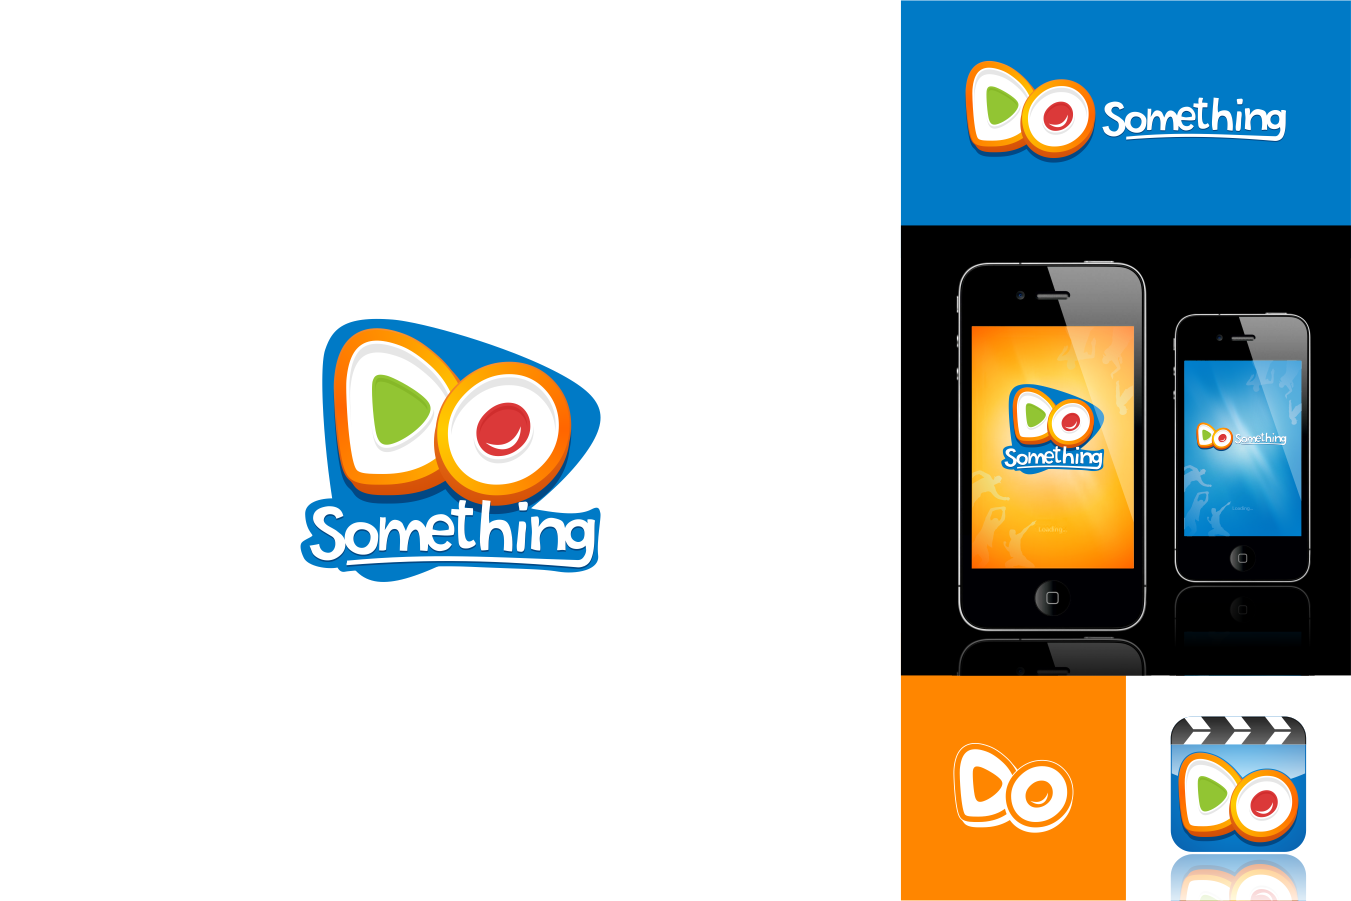 iOS Game: Do Something (like Draw Something, but social video charades & guessing game for friends!)